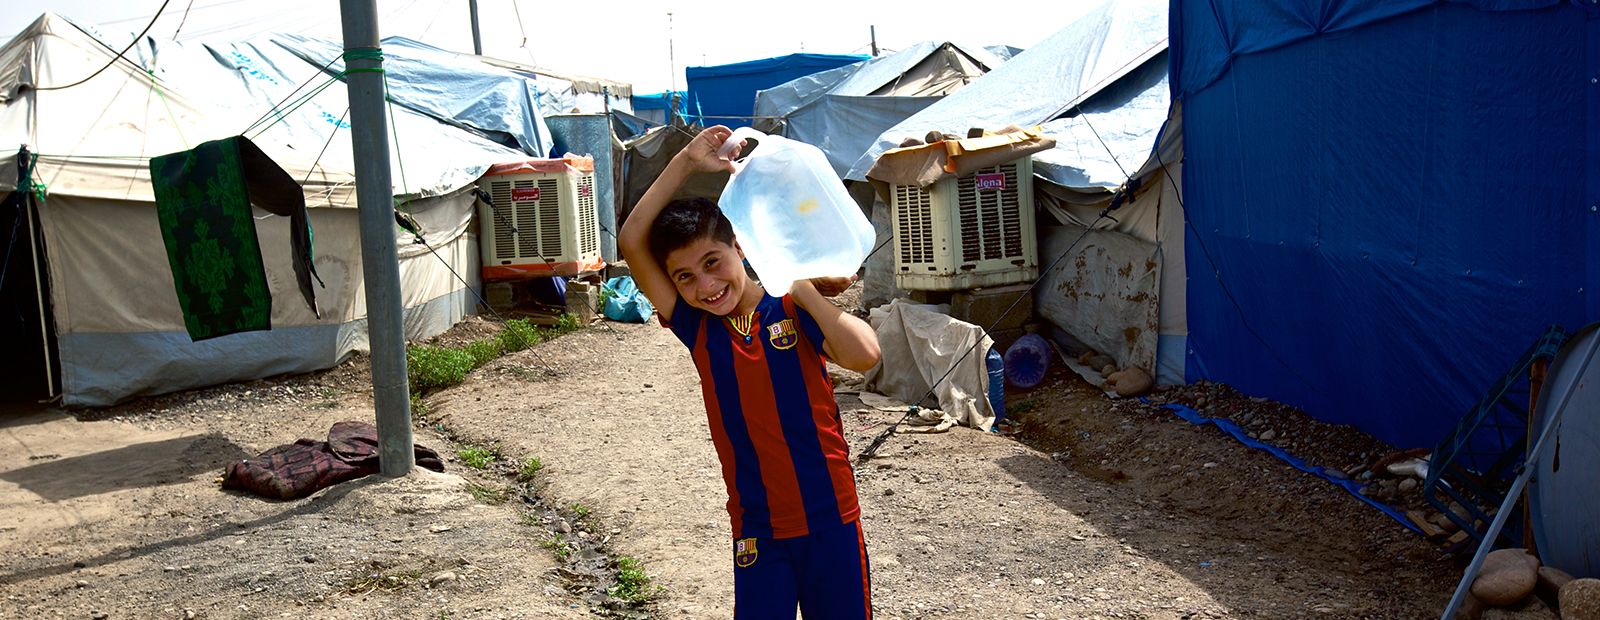 Fighting cholera in Yemen: Safe and hygienic water containers needed to combat the outbreak